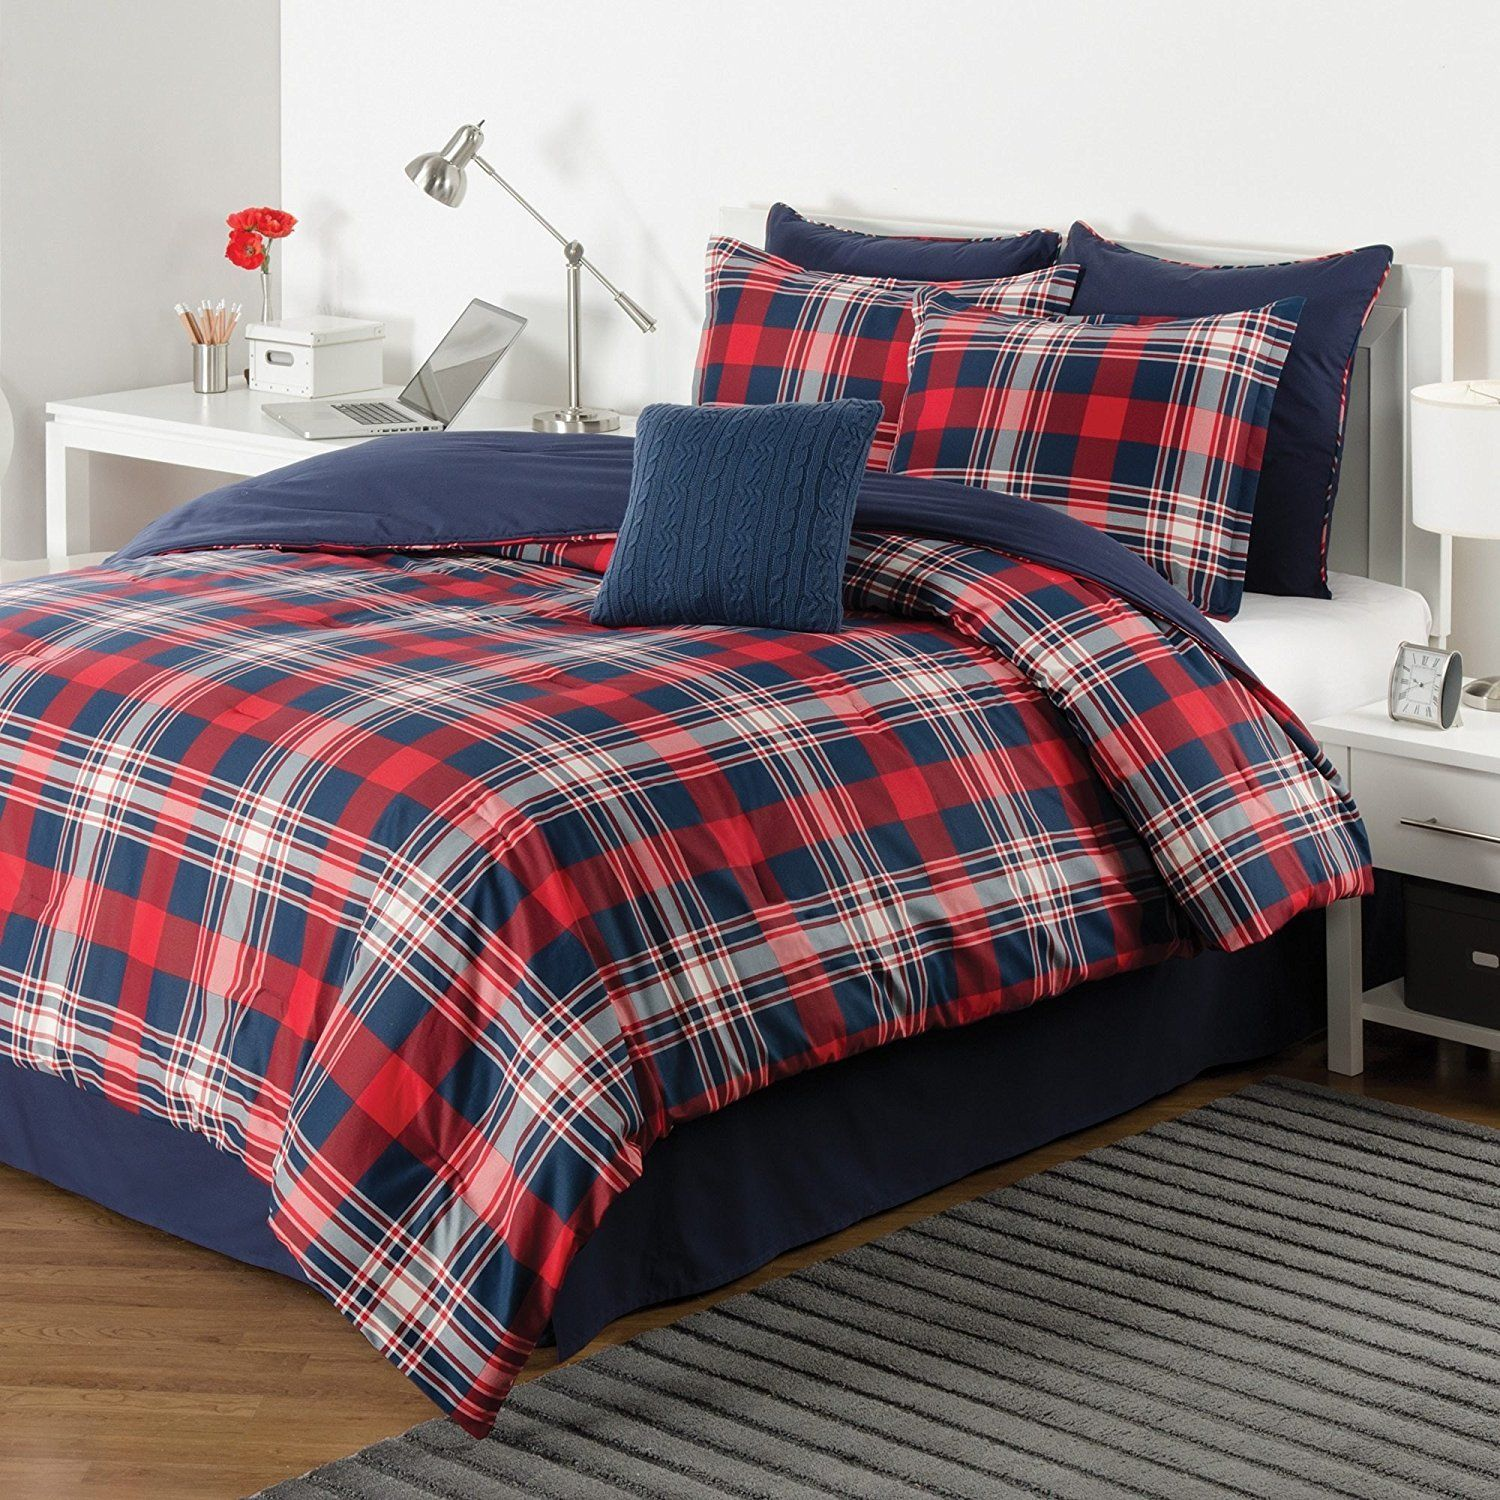 White Red Navy Blue Plaid Comforter Twin Set Cozy Warm Cabin Themed Bedding Checked Lumberjack Pattern Lodge Southwest Tartan Madras Hunting Country